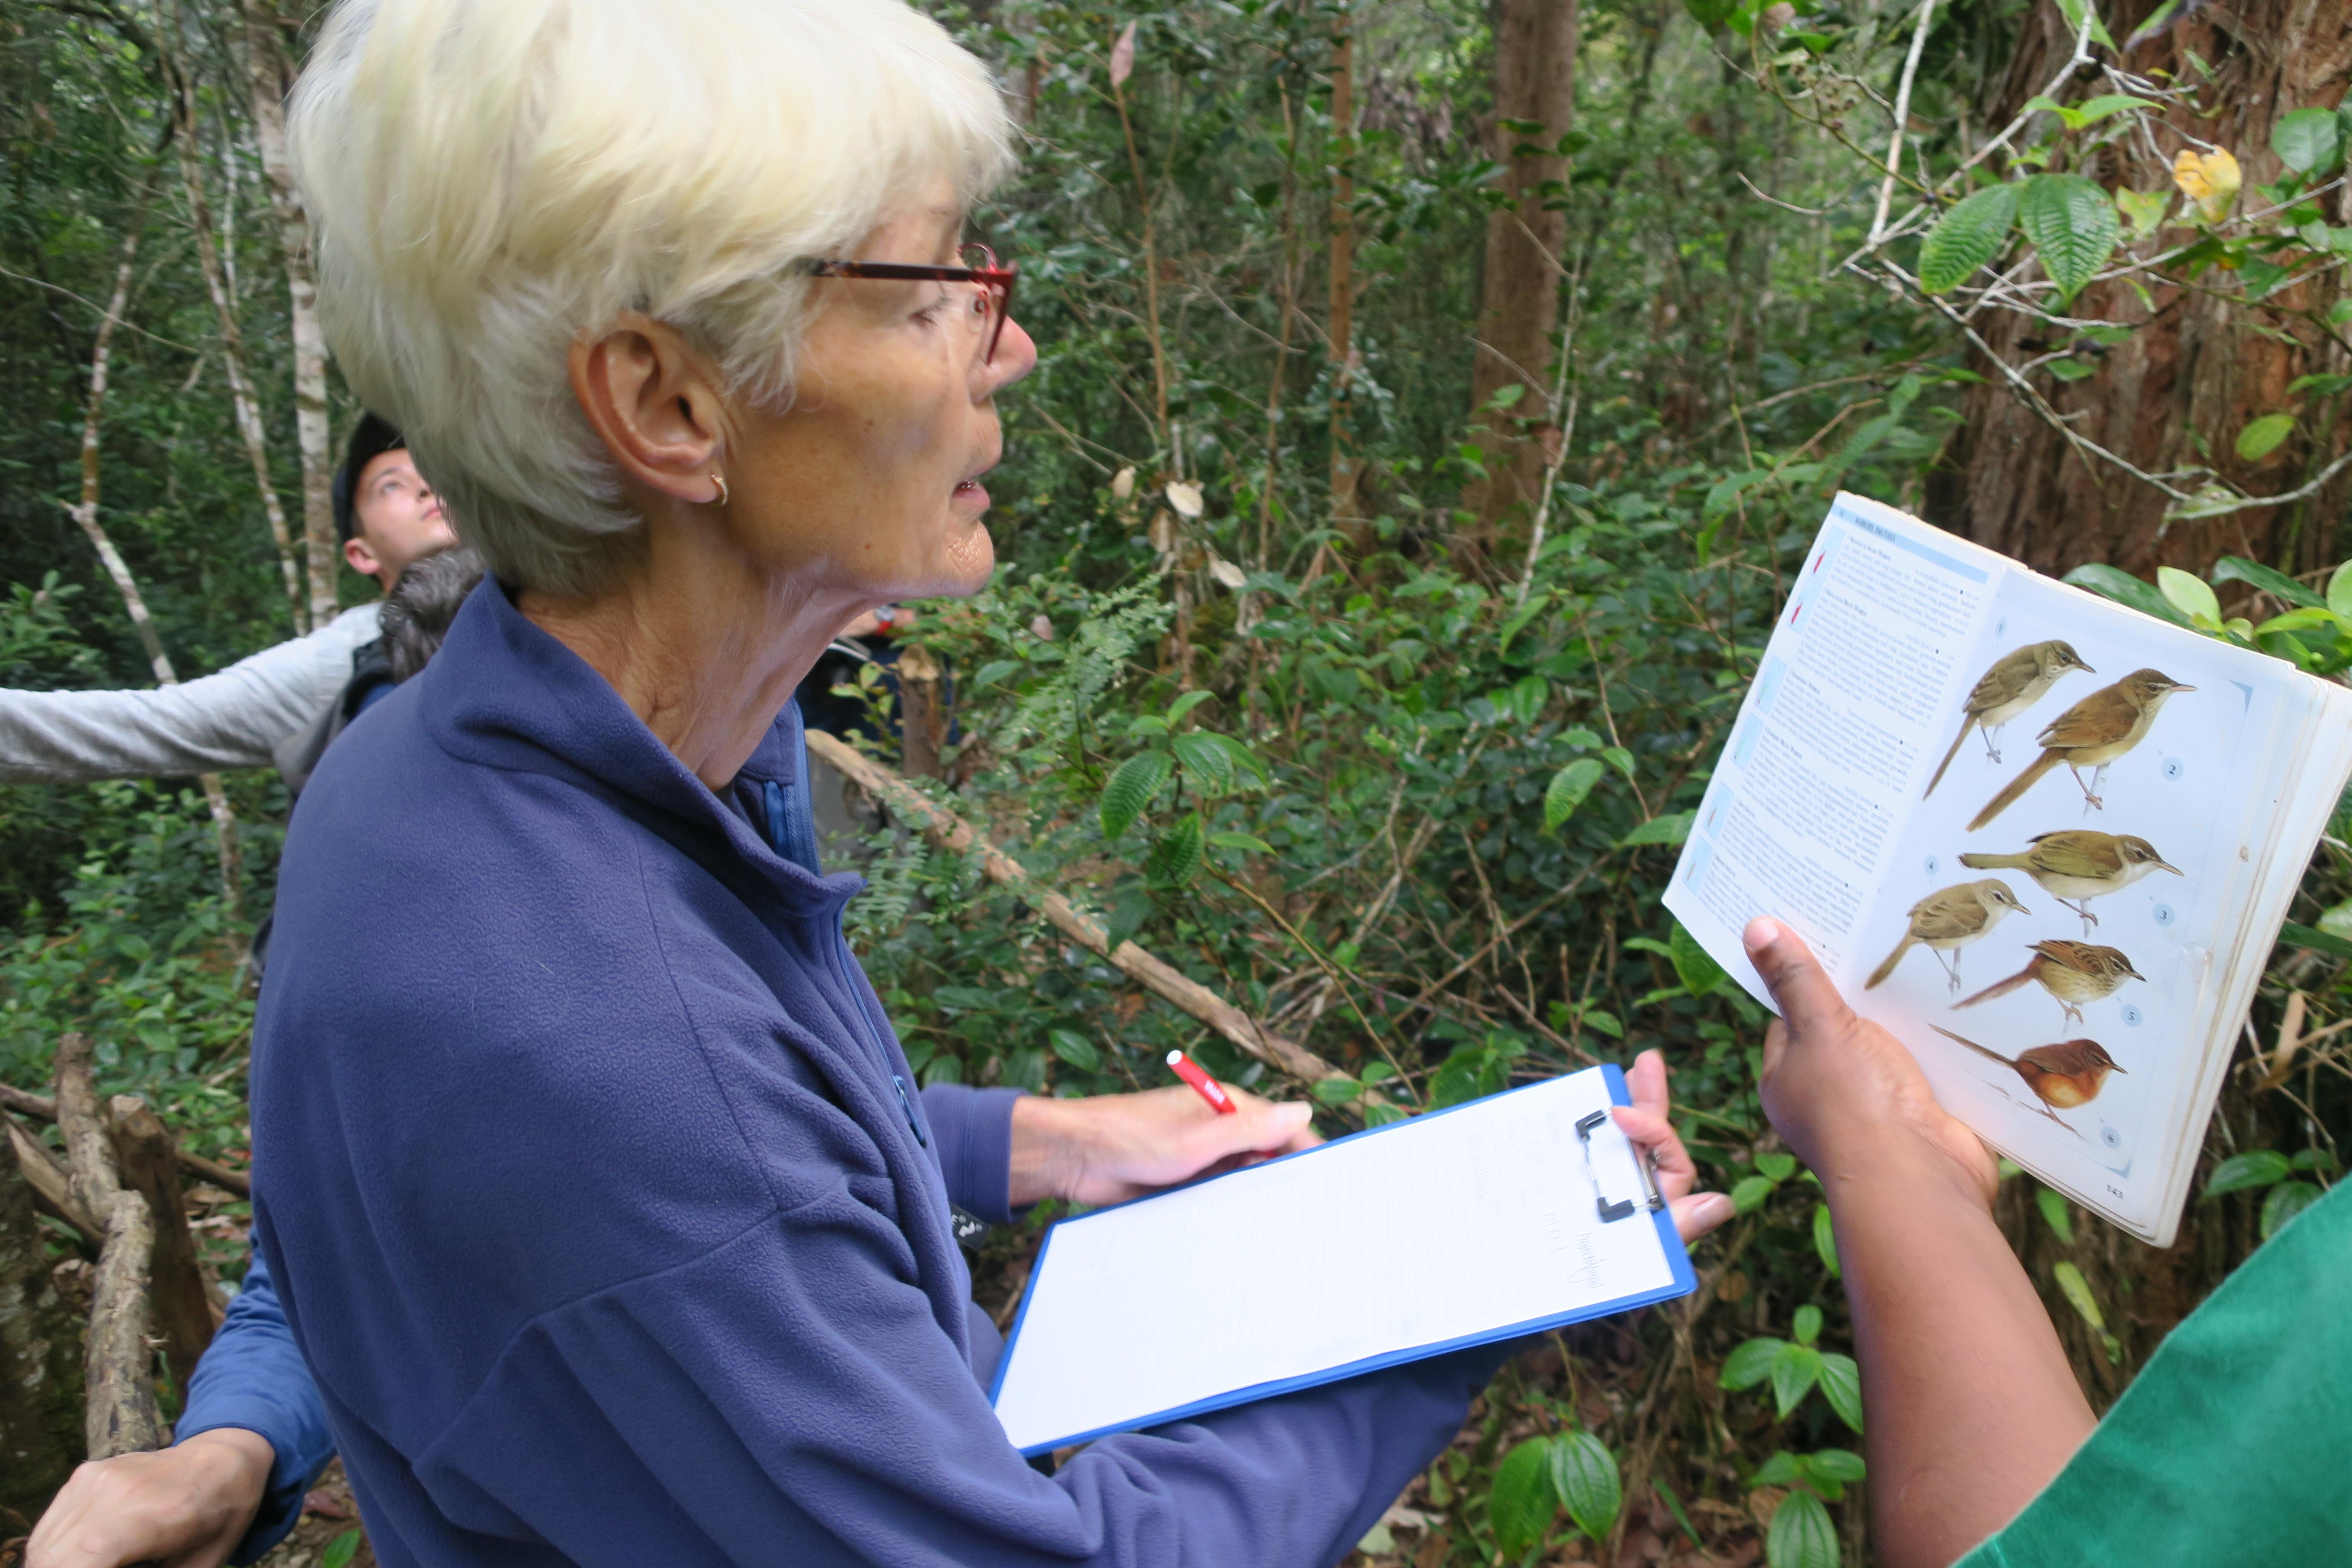 A Projects Abroad volunteer is pictured identifying a bird whilst on her rainforest conservation volunteering work in Madagascar.